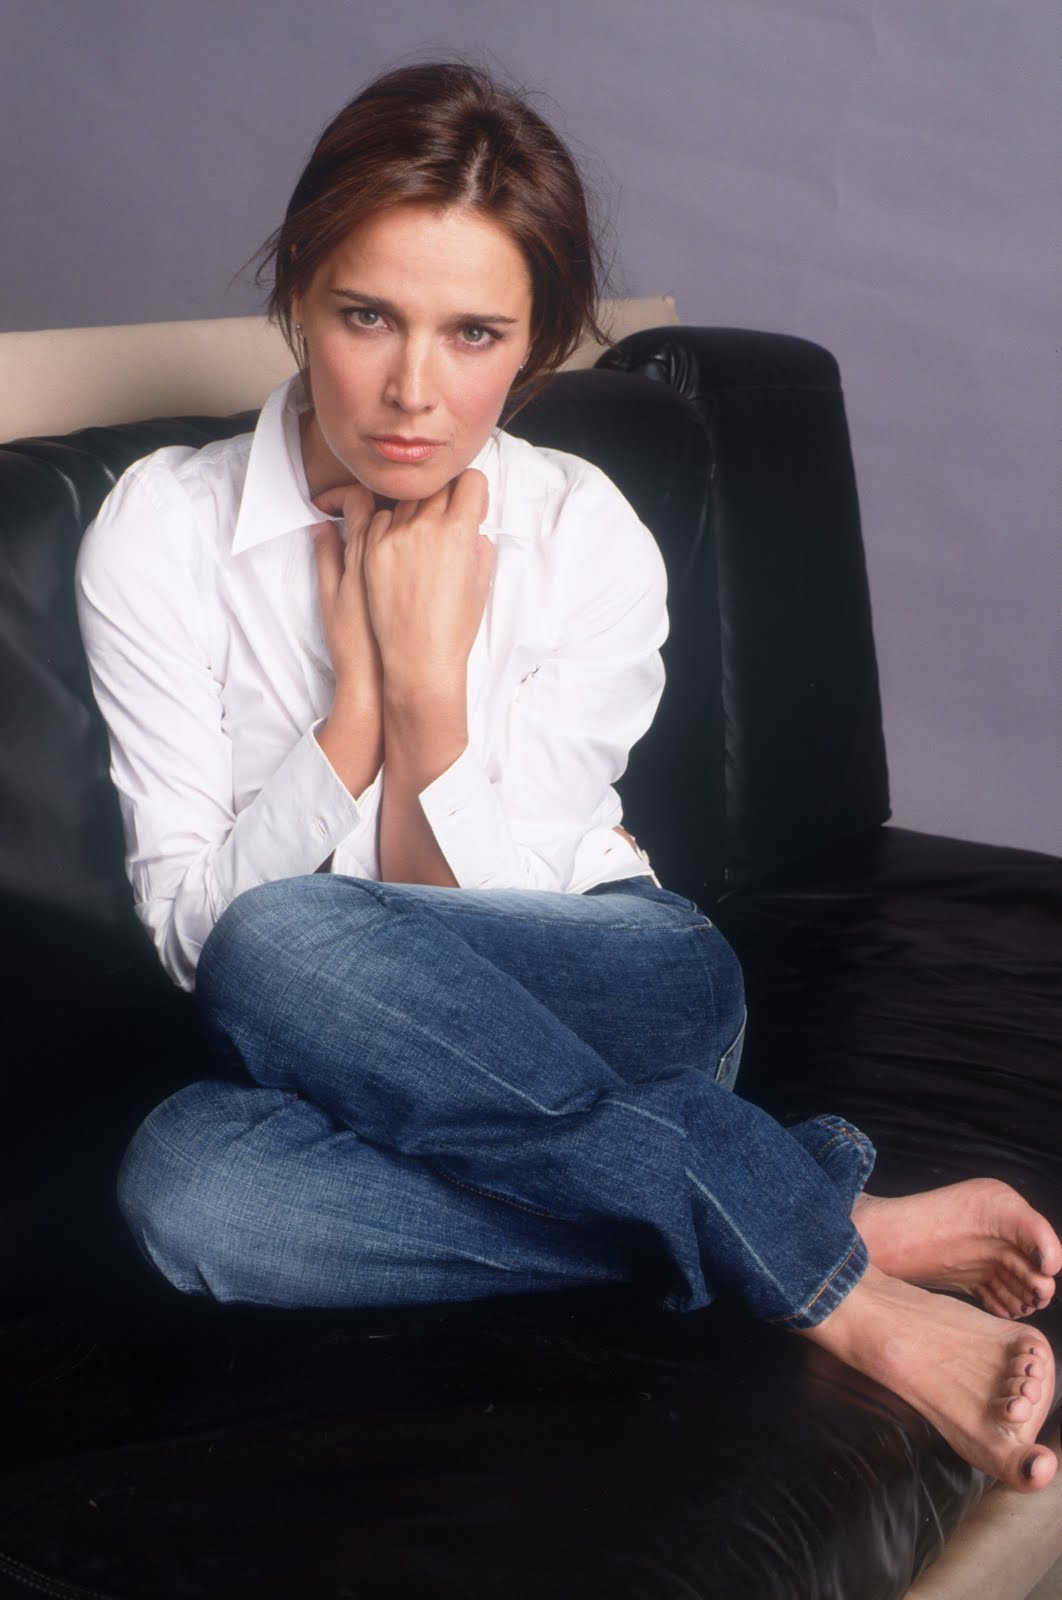 Feet Claire Forlani nudes (99 photo), Tits, Bikini, Instagram, cleavage 2018